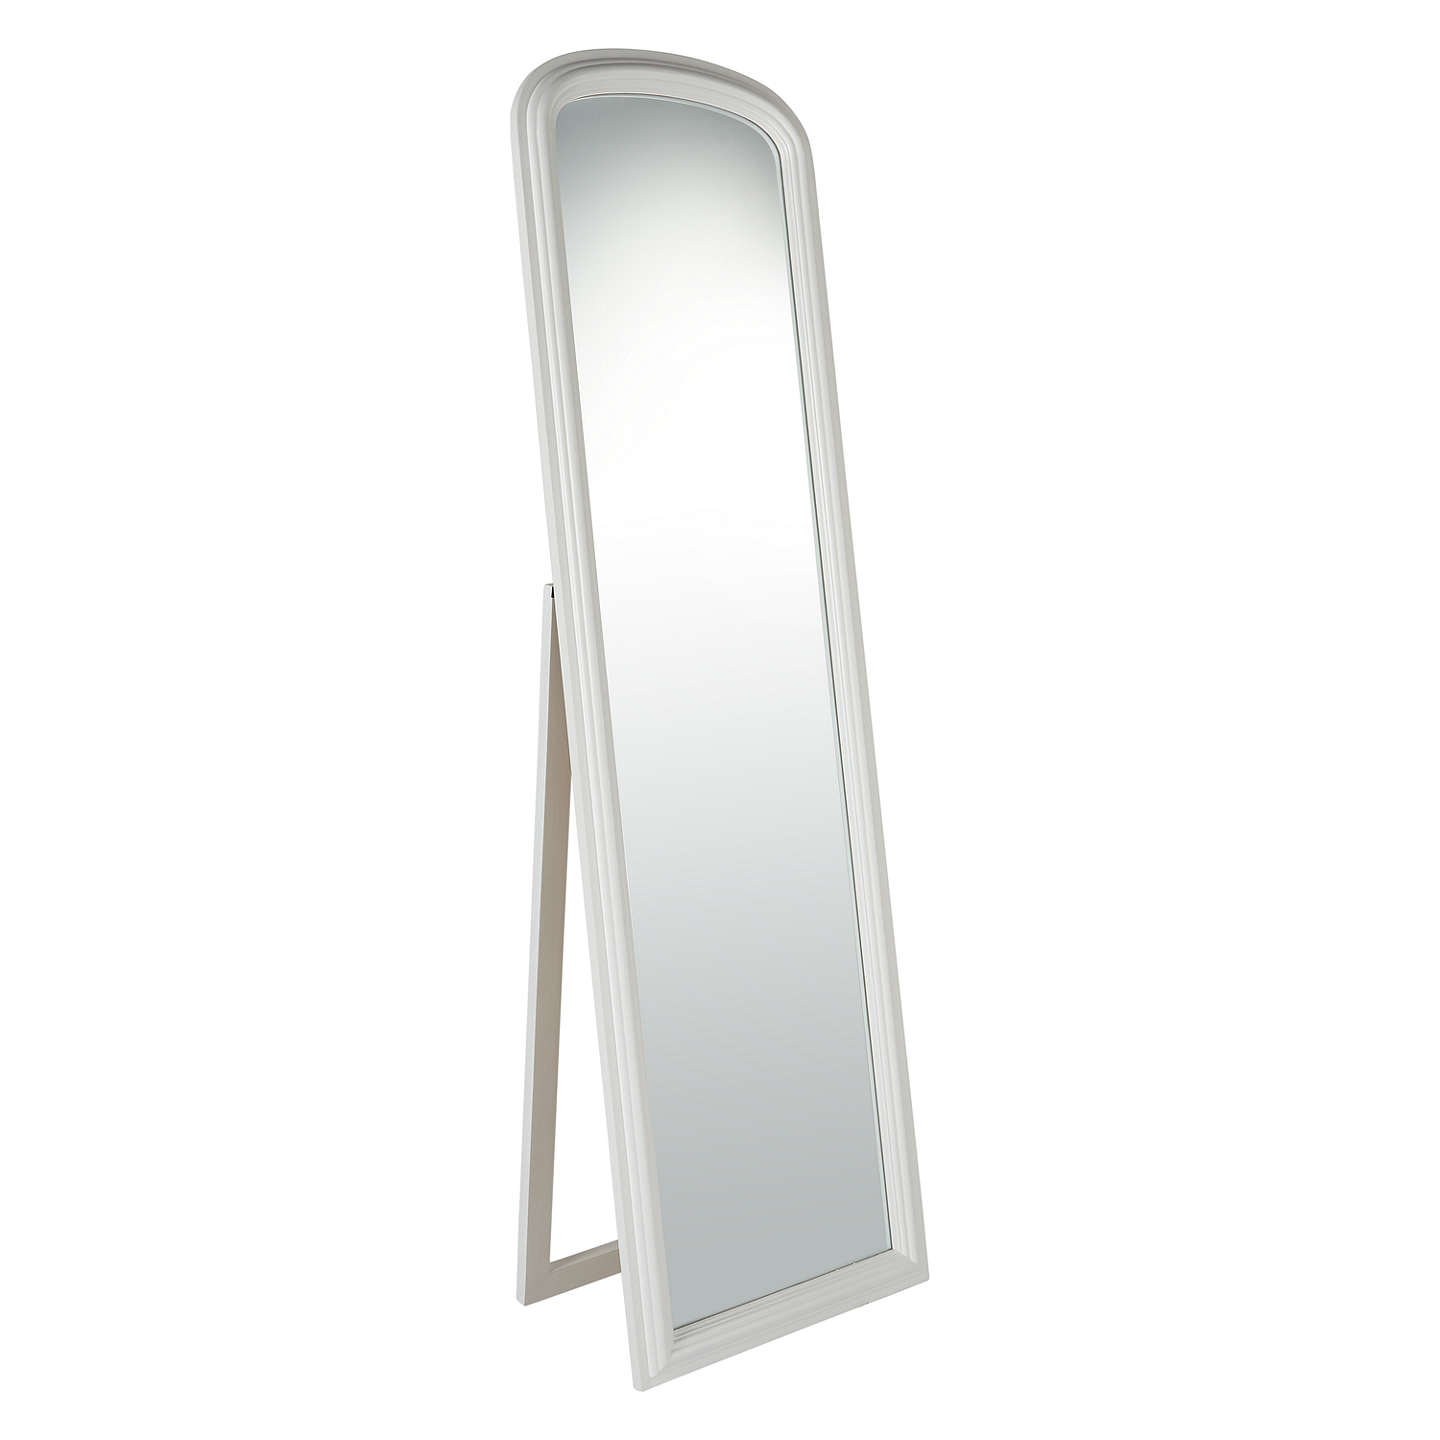 white full length mirror. BuyCroft Collection Freestanding Full Length Mirror, White Online At Johnlewis.com Mirror